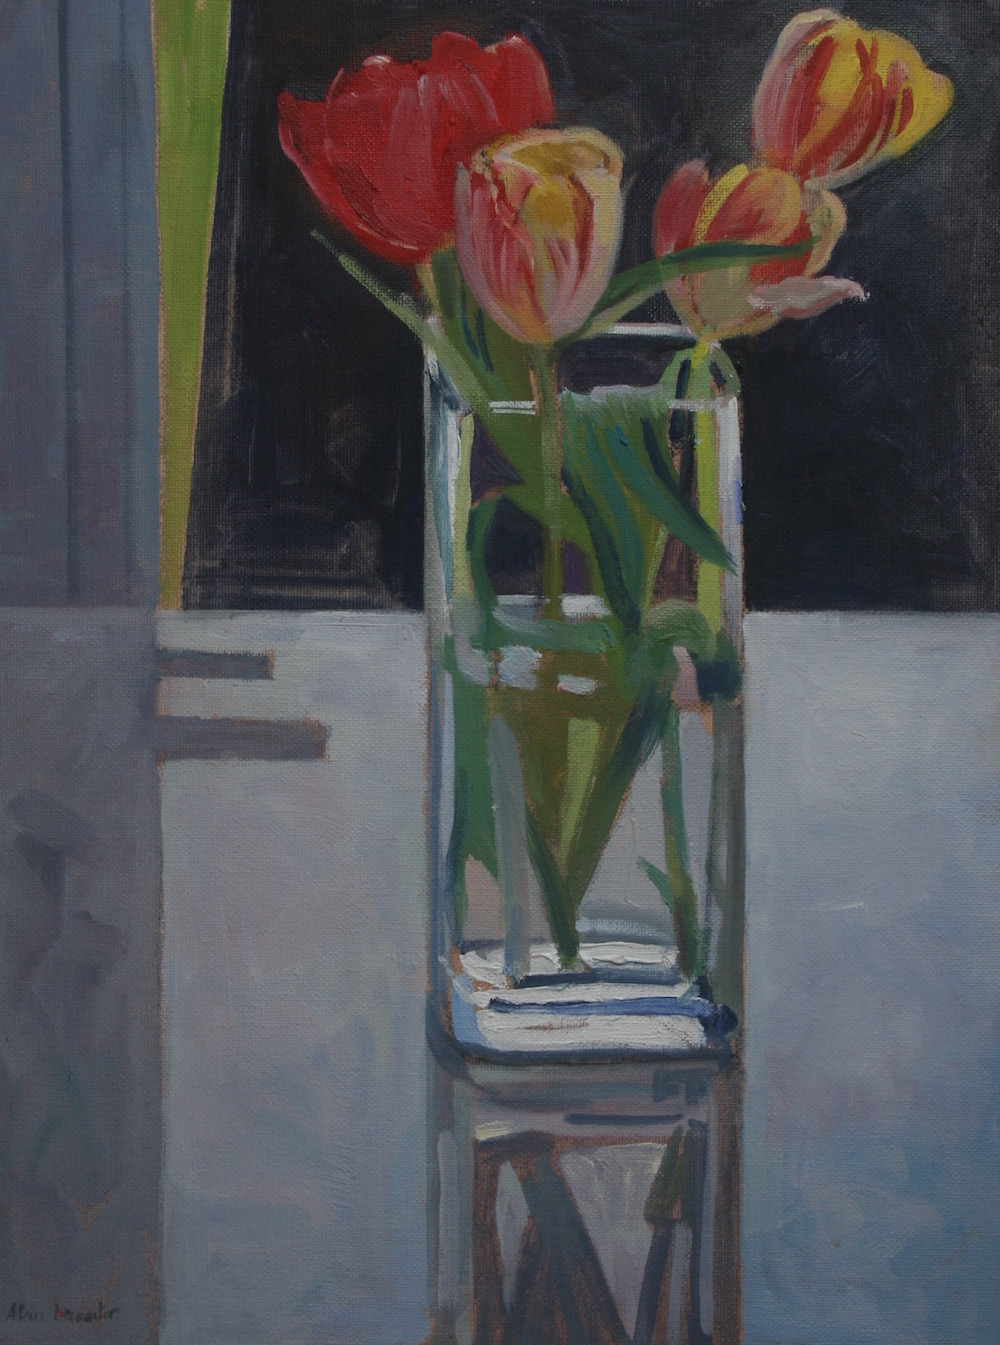 Spring Tulips on a White Table (12 x 16) £325.00